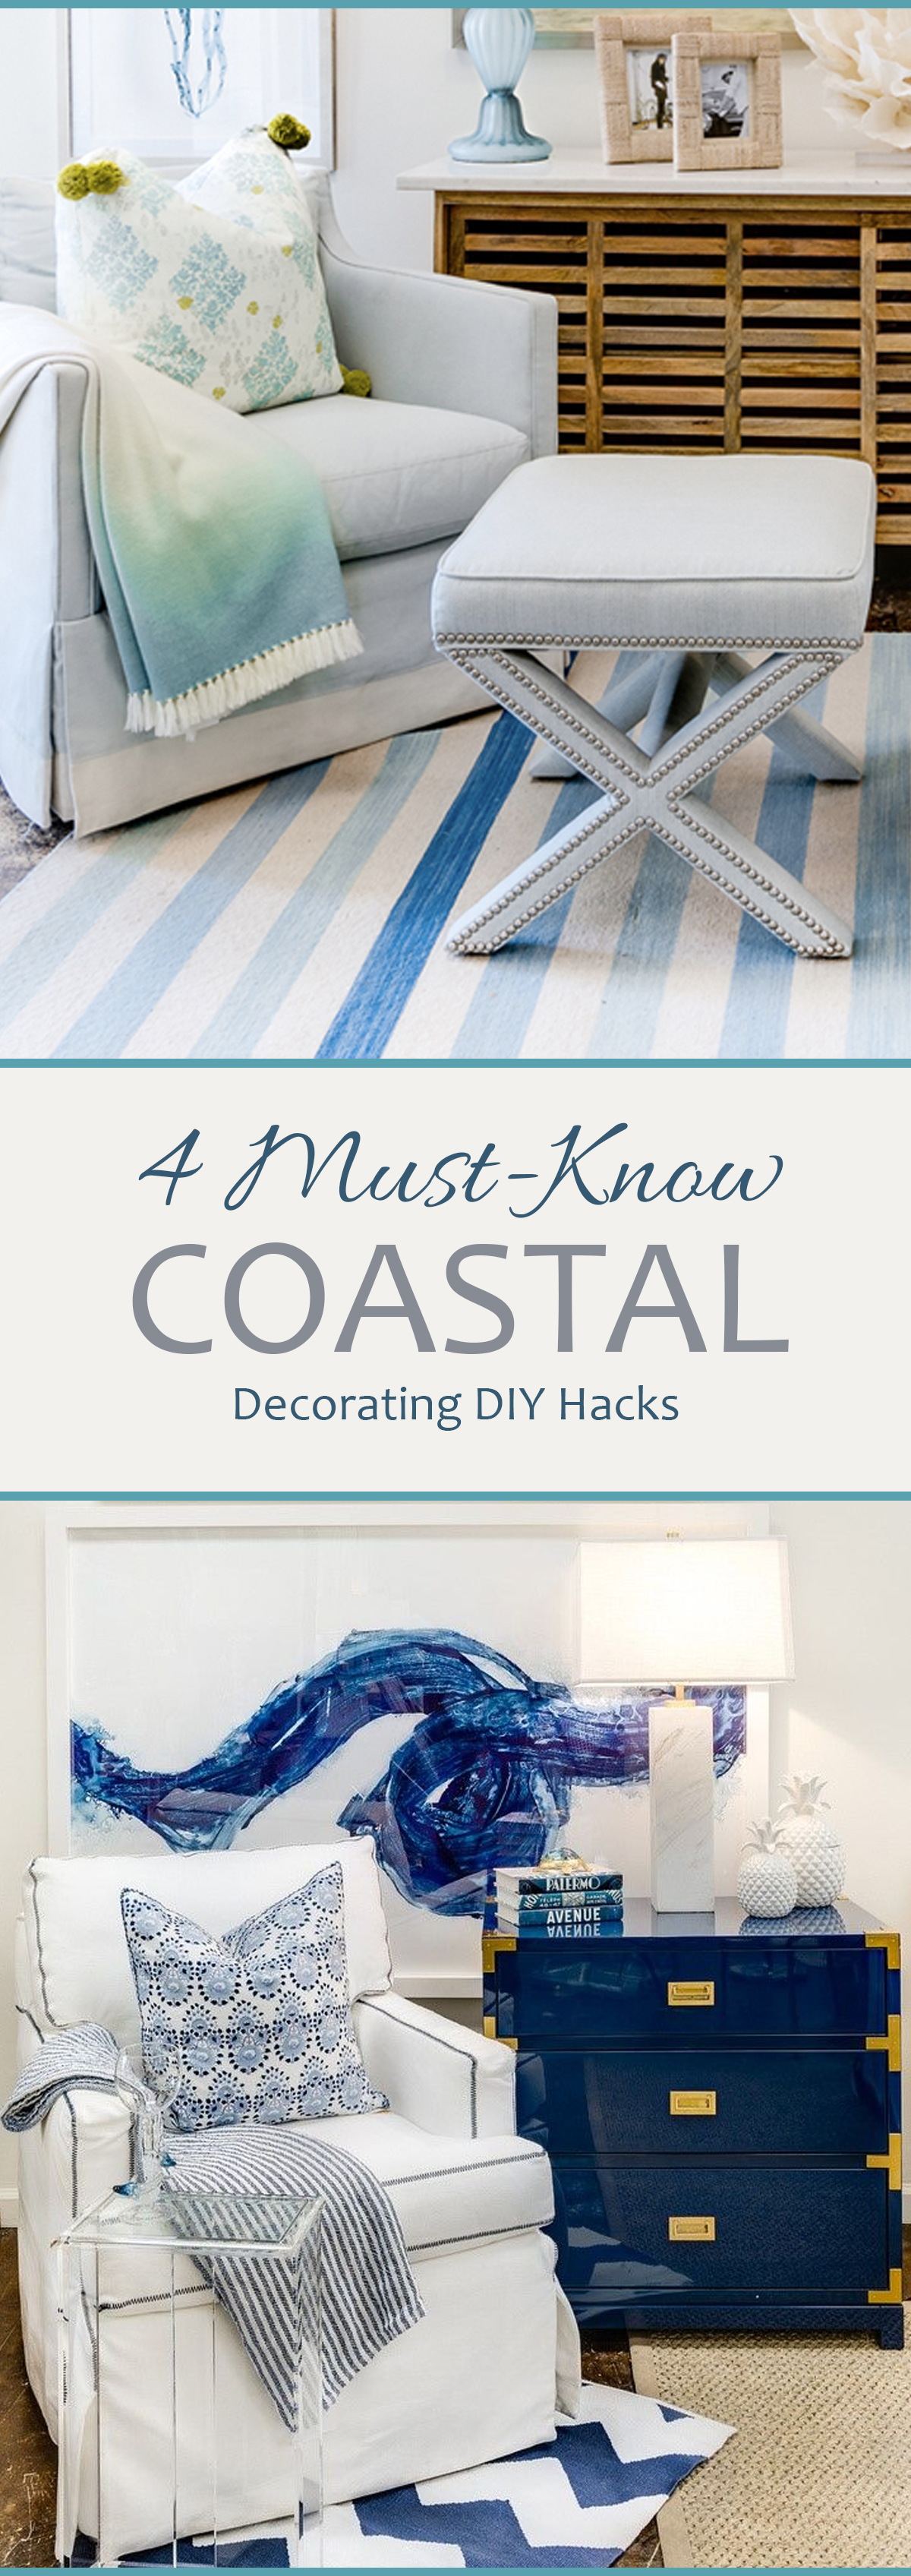 4-must-know-coastal-decorating-diy-hacks